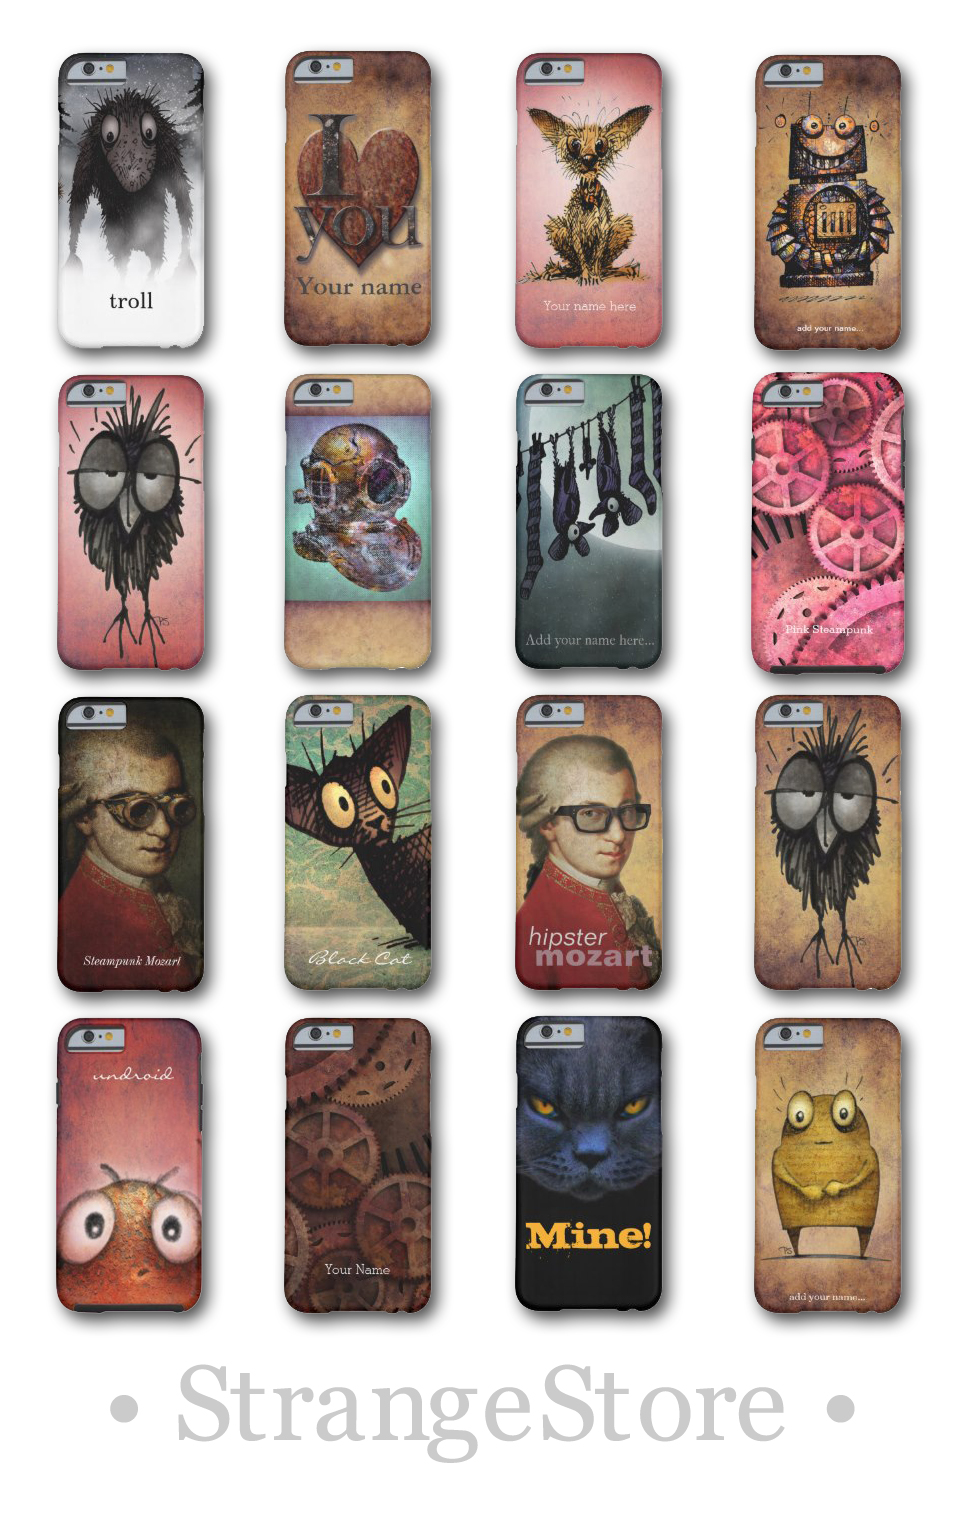 cat iphone6 cases, funny iphone6 cases, strangestore, paul stickland art, steampunk iphone6,